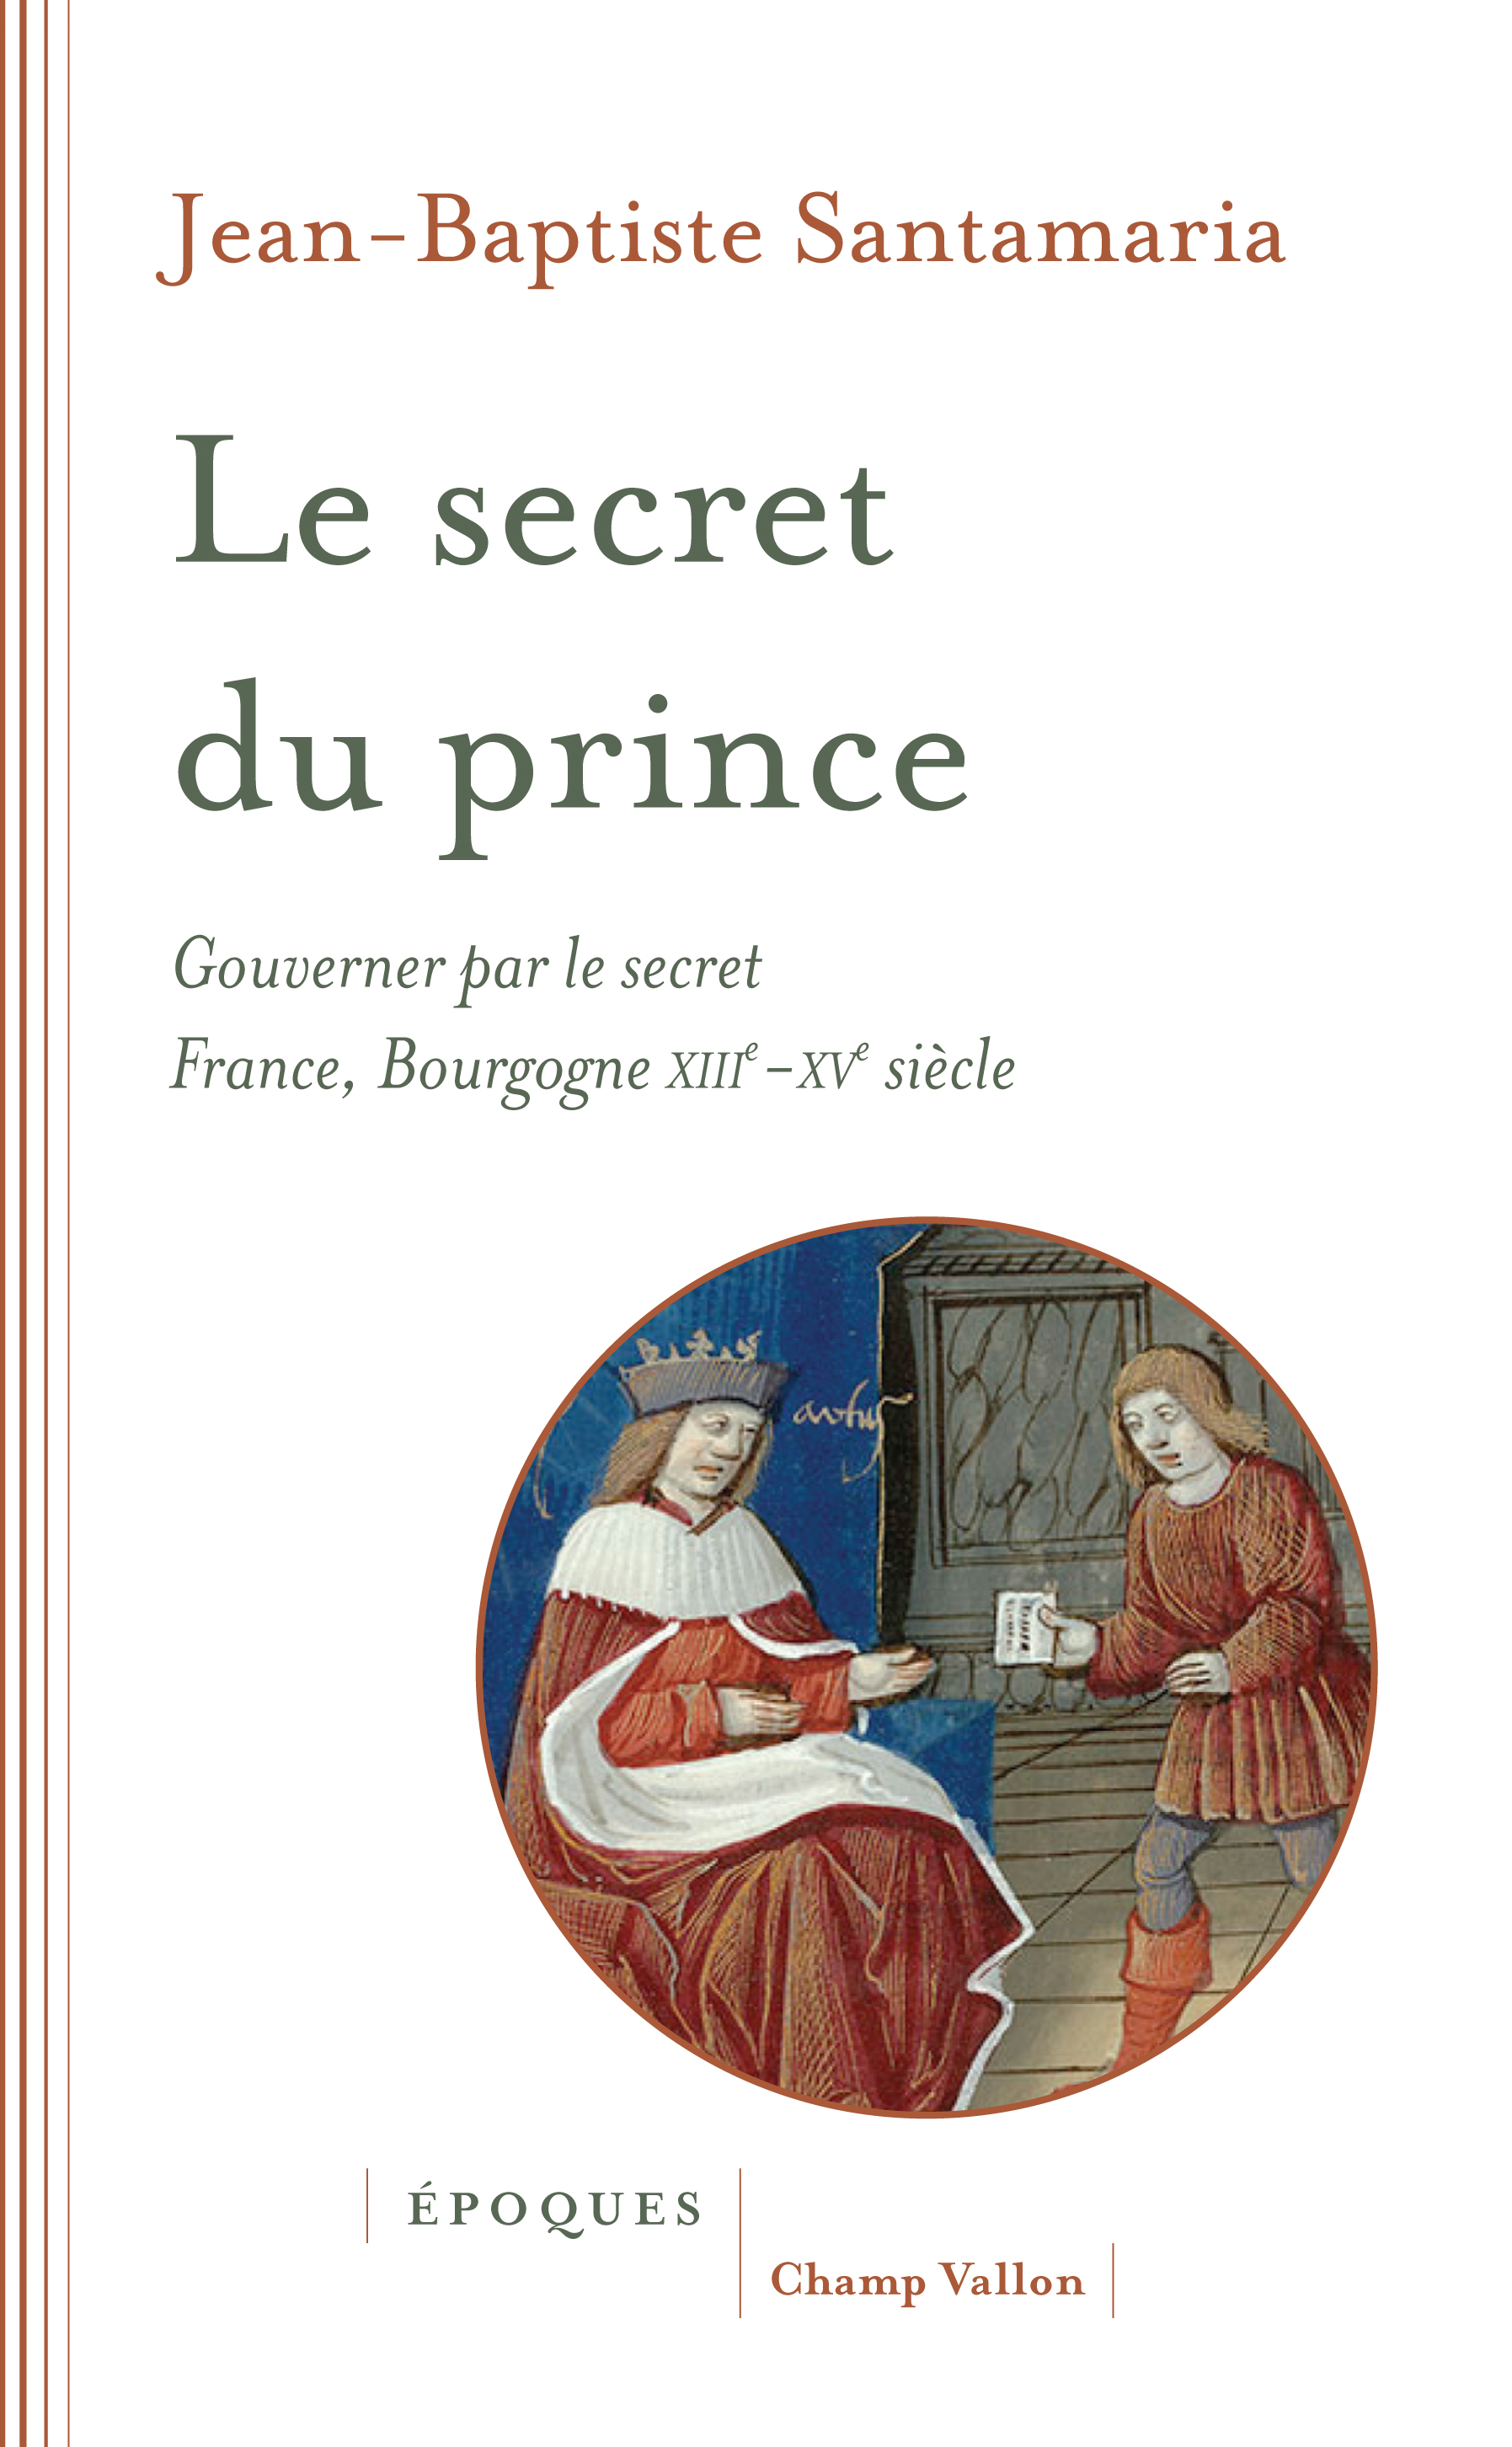 Le secret du prince santamaria